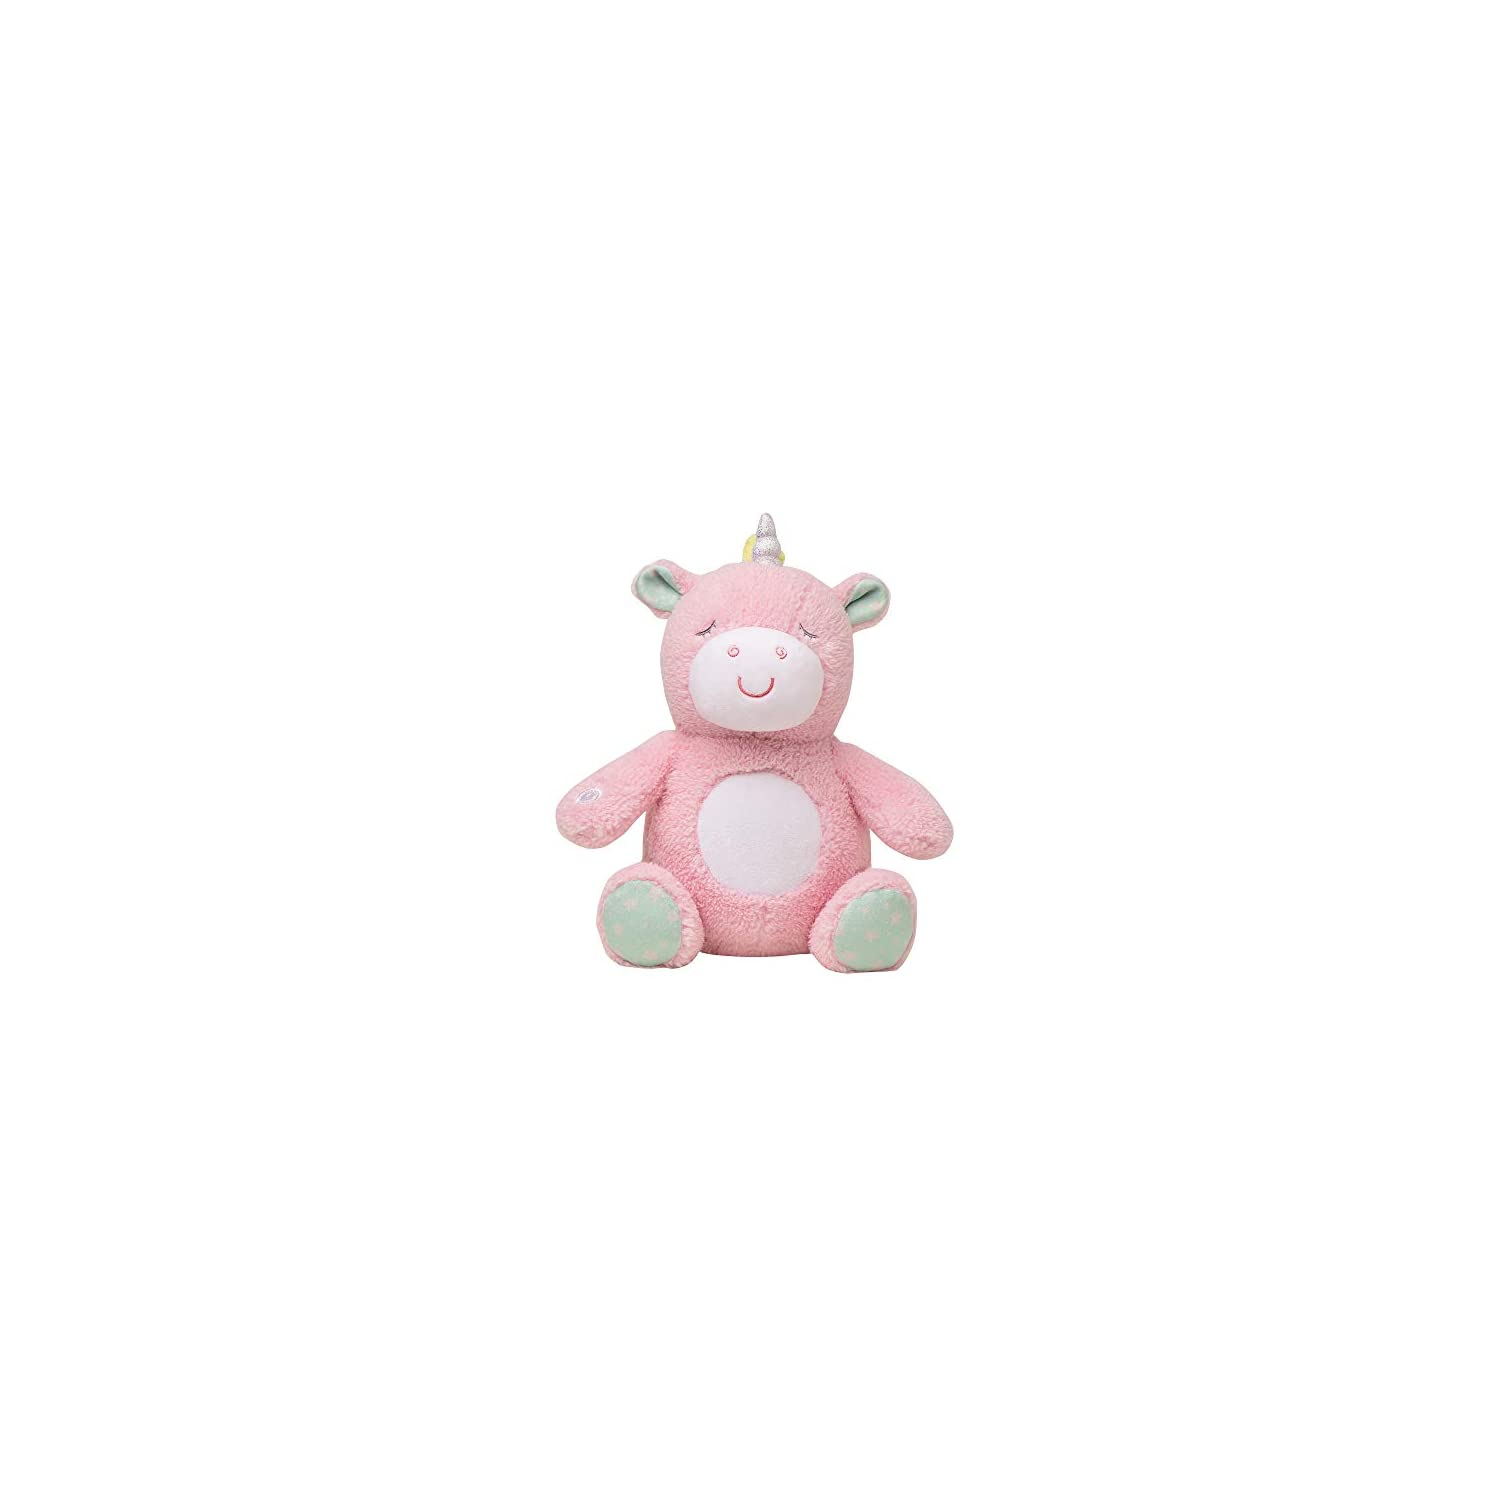 Soft Dreams Unicorn Music and Glow Soother, Pink/Mint